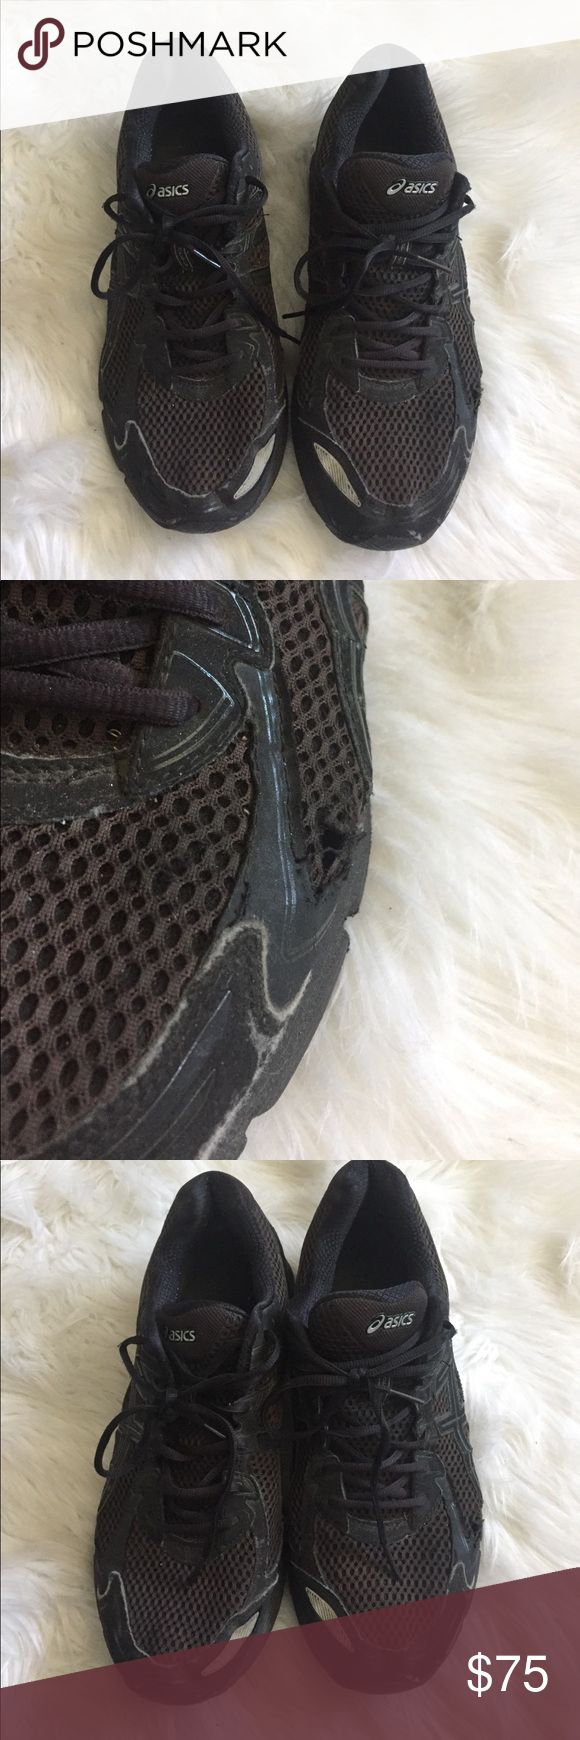 Black asics running shoes GT 2170 Black asics running shoes. Small hole on side of left shoe. Asics Shoes Athletic Shoes